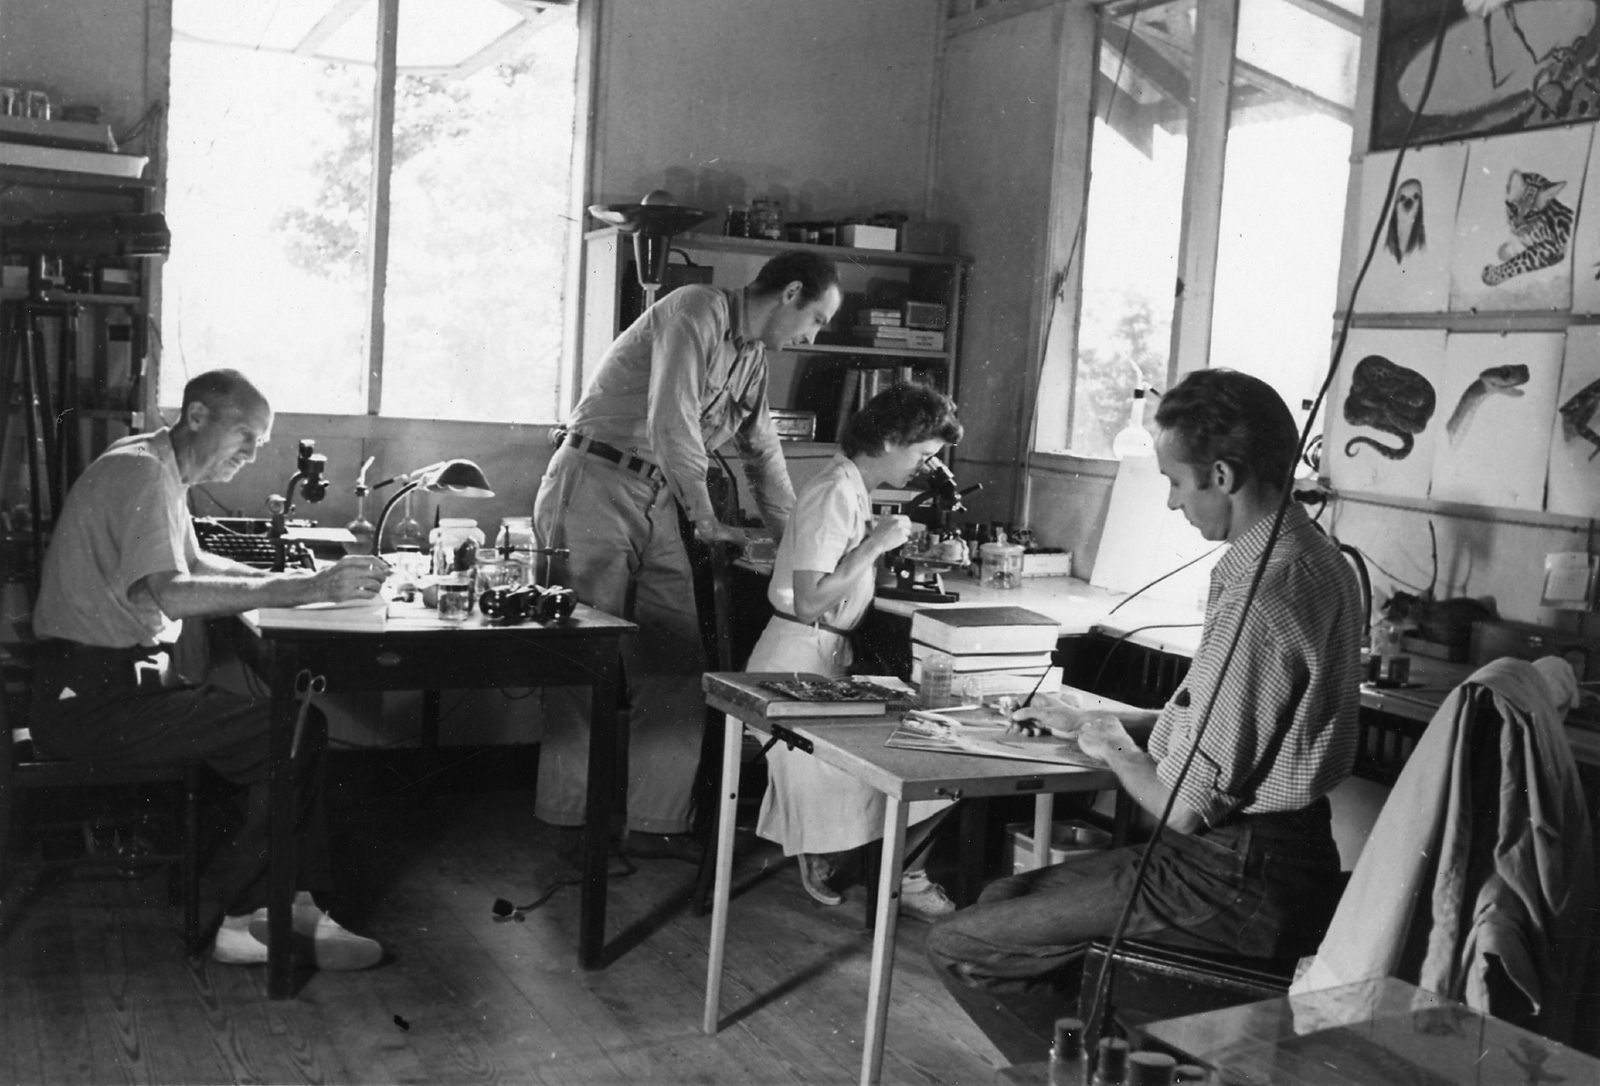 William Beebe and staff at work in lab in Venezuela, 1940s. © Wildlife Conservation Society. Reproduced by permission of the WCS Archives.